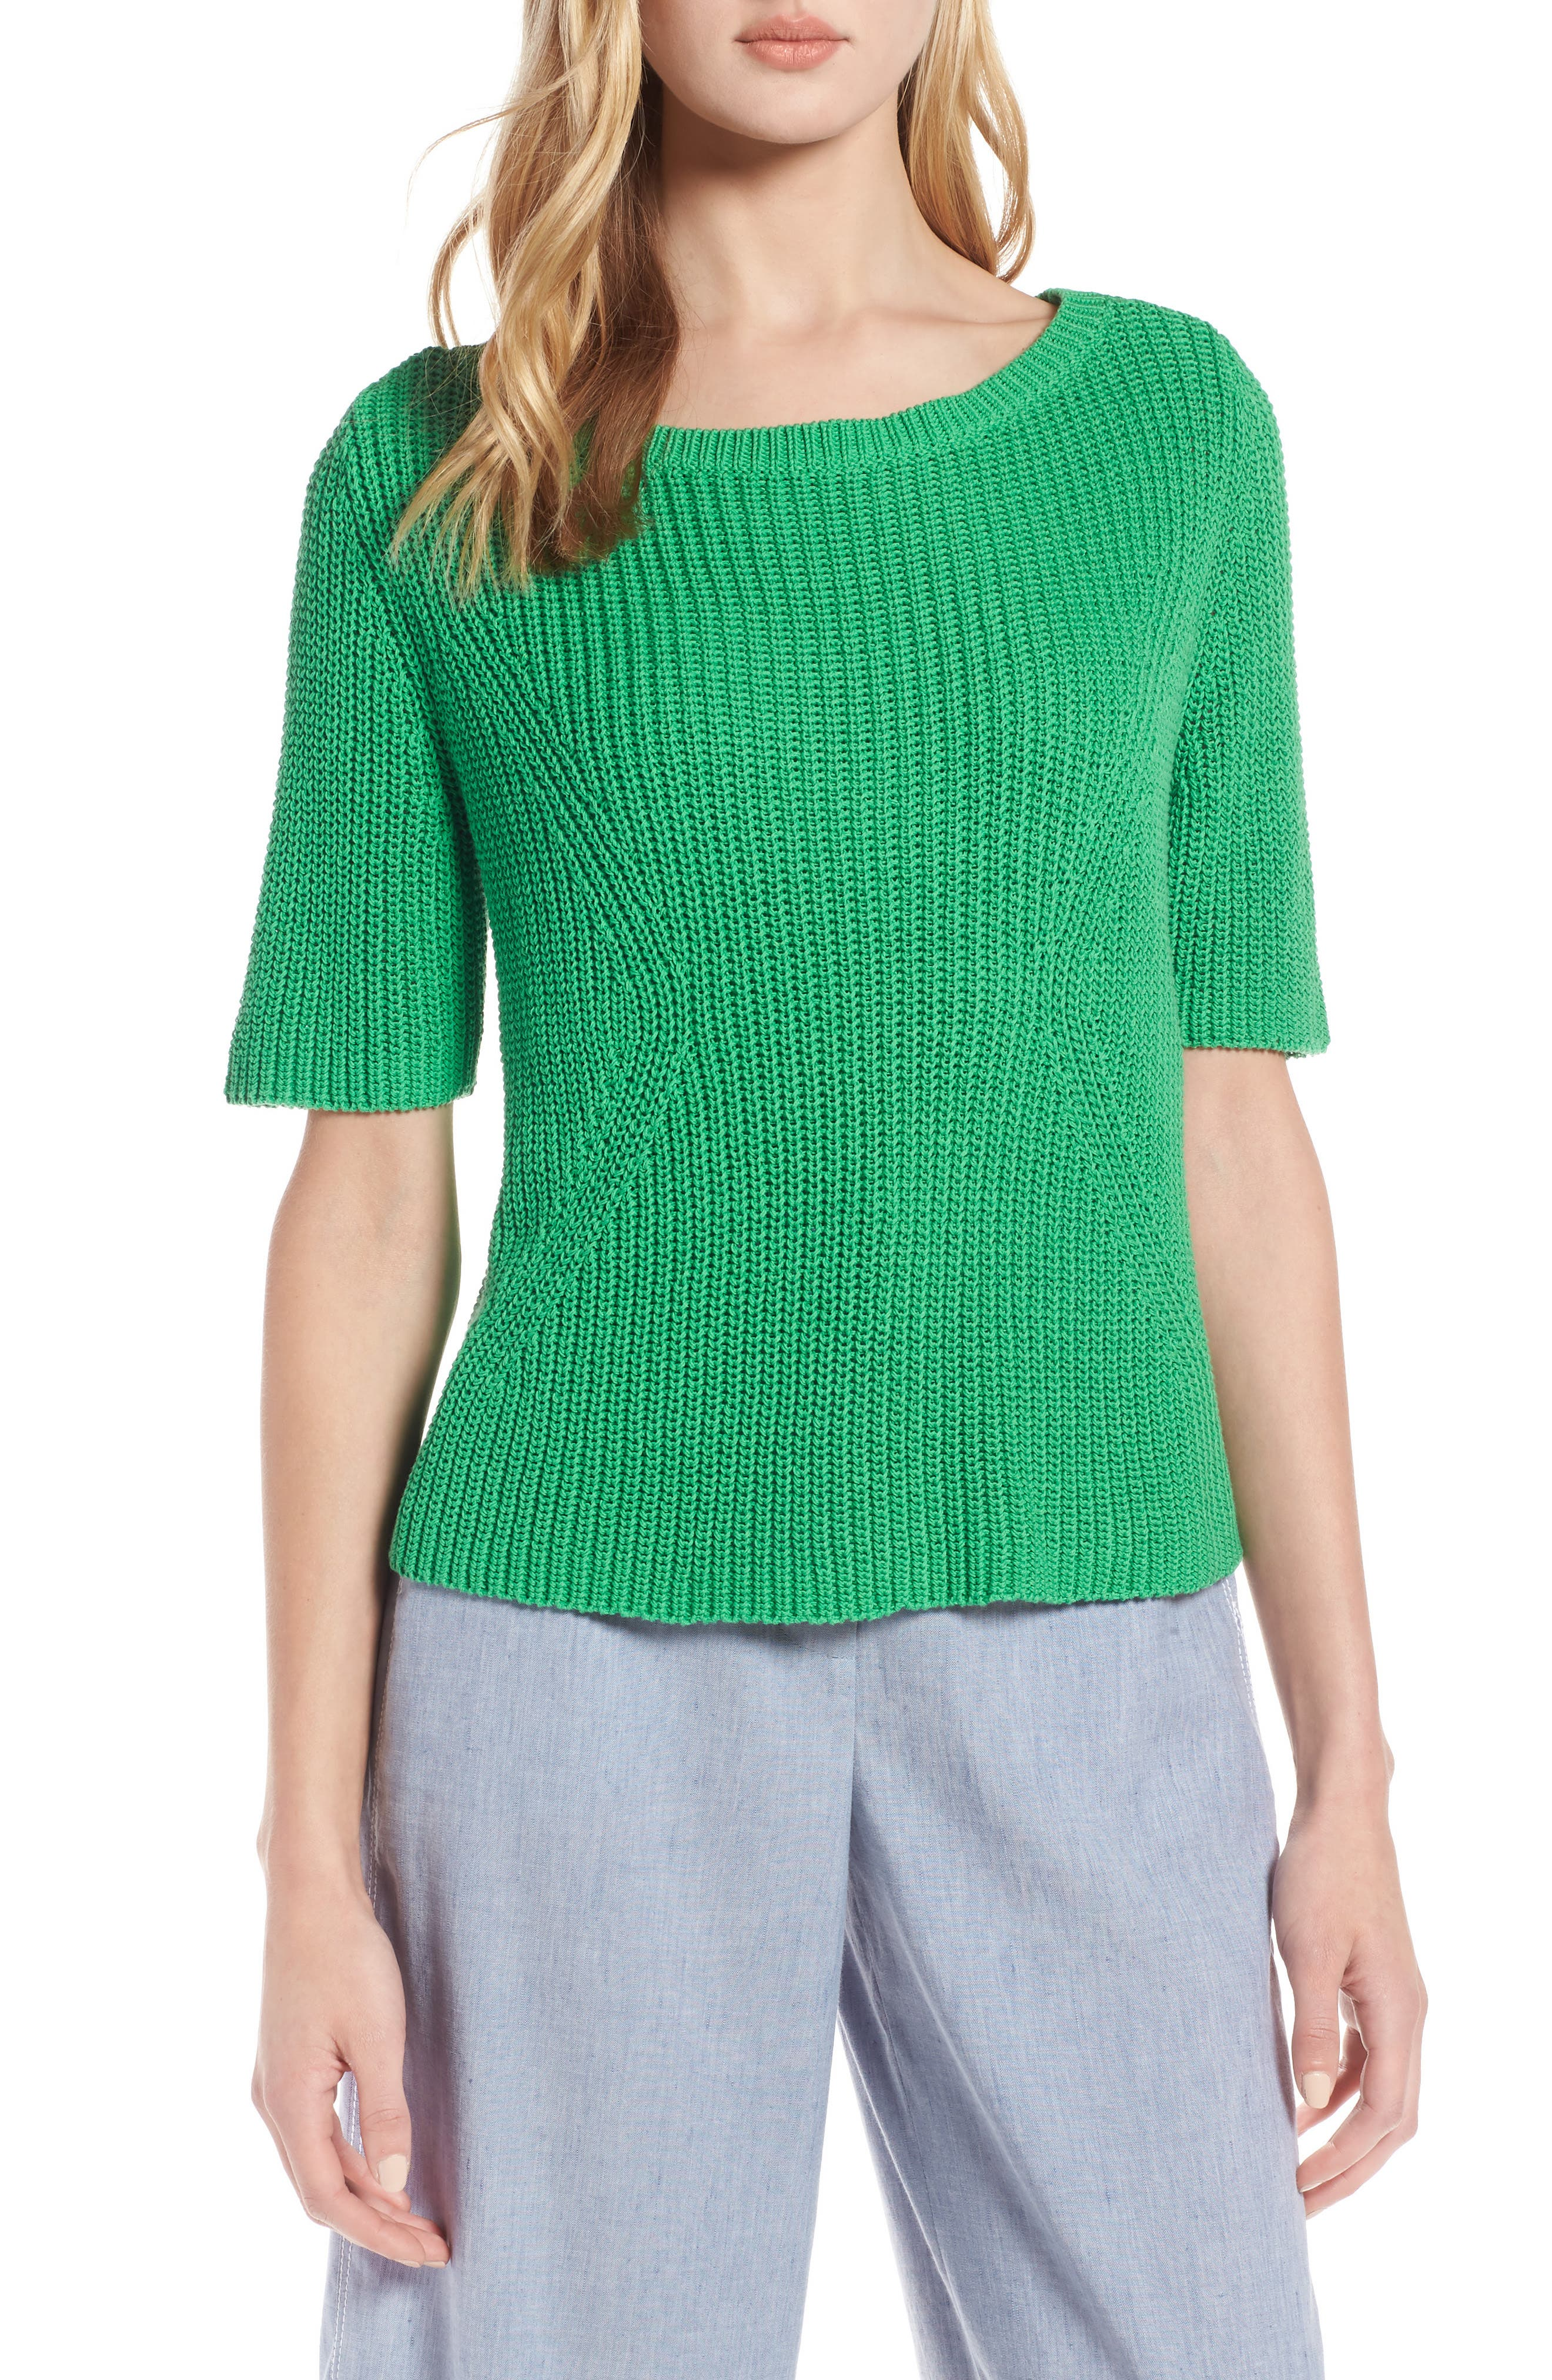 Shaker Stitch Cotton Sweater,                             Main thumbnail 1, color,                             Green Kelly